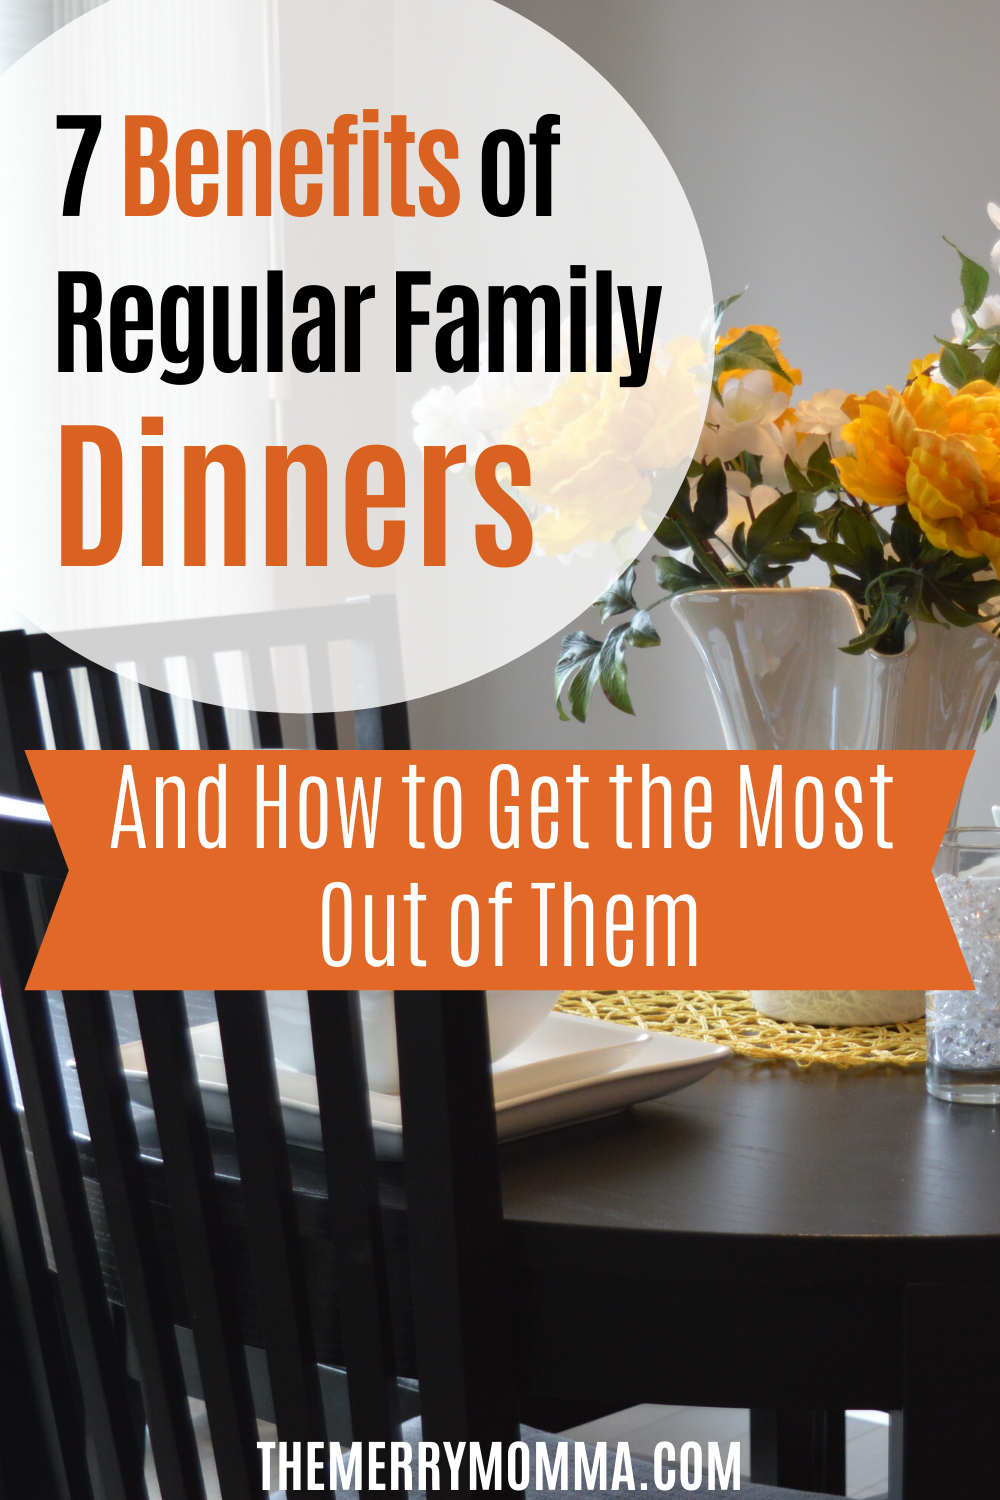 7 Benefits of Regular Family Dinners